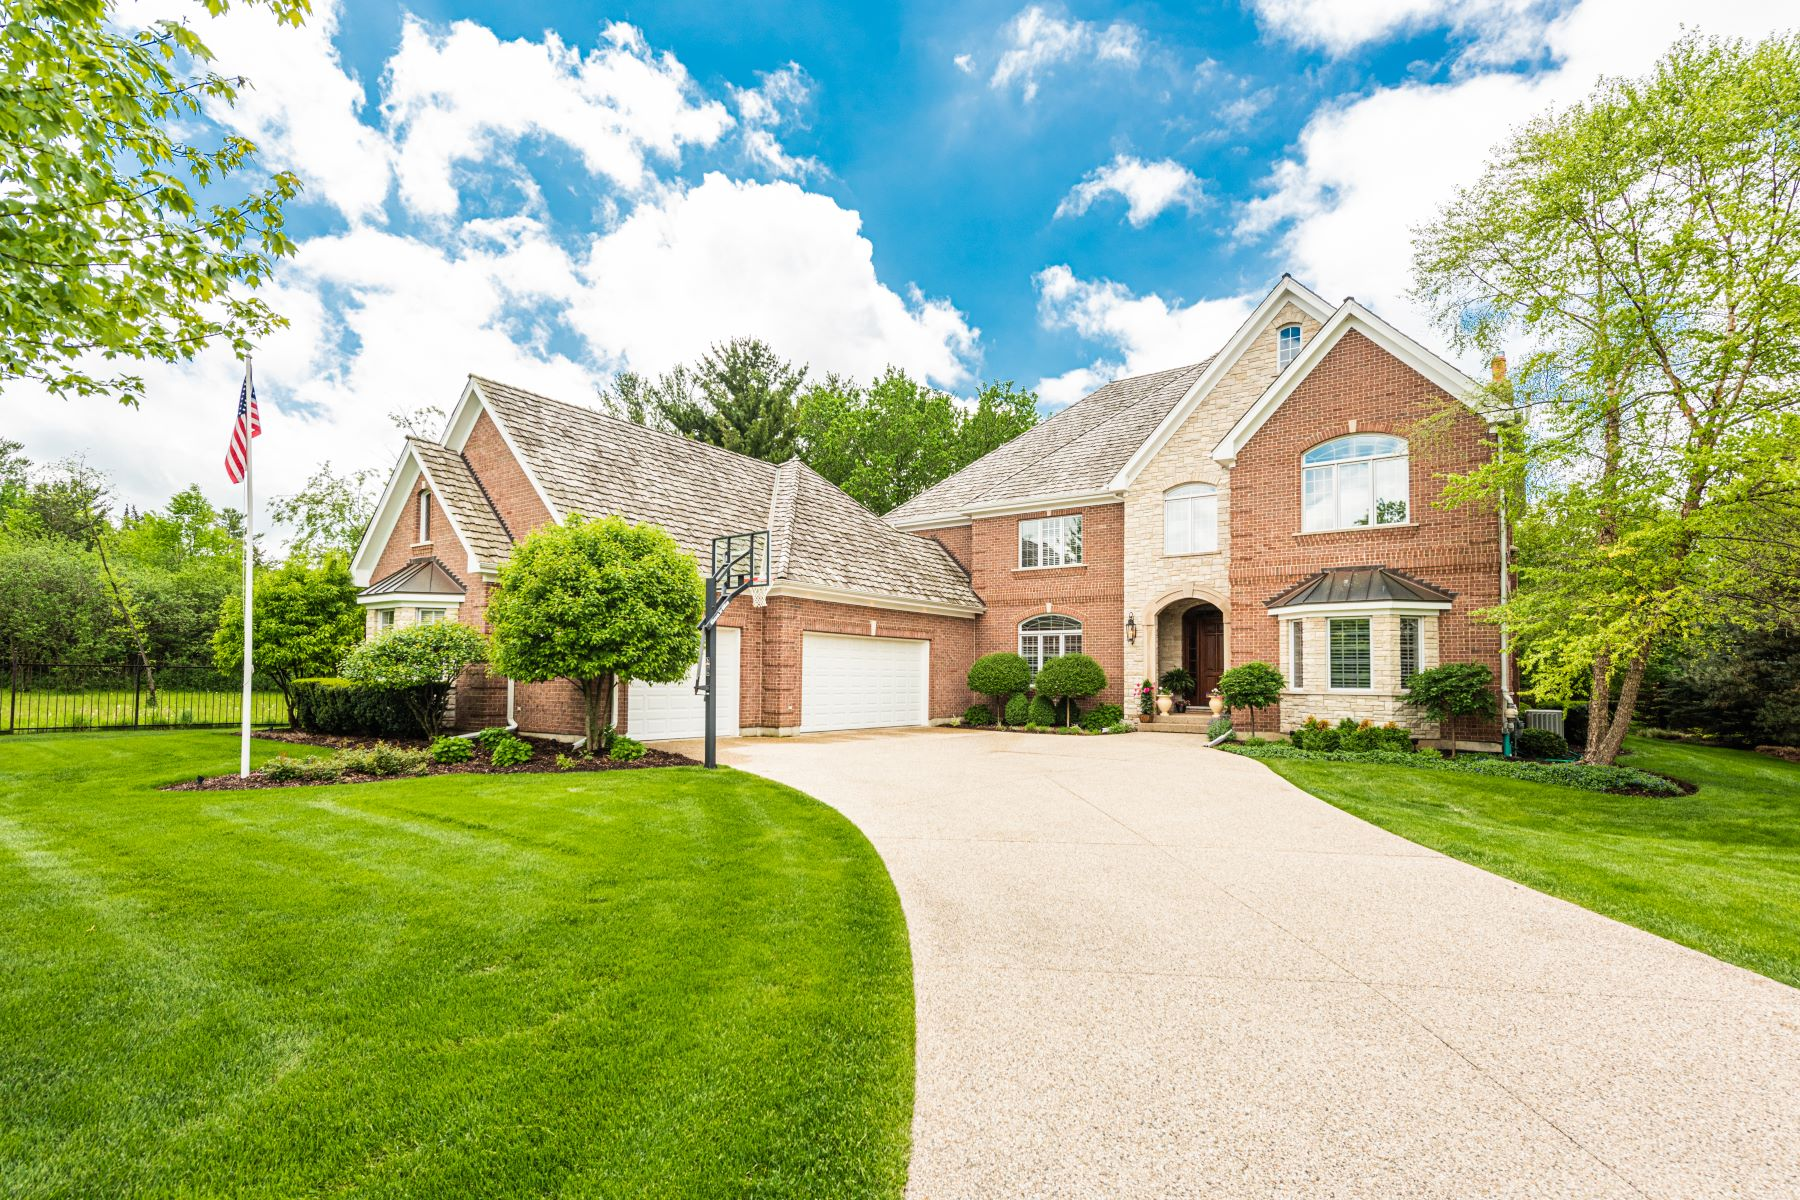 Single Family Homes for Sale at The Perfect Home Located In the Gated Community of Wynstone 44 Haversham Lane North Barrington, Illinois 60010 United States